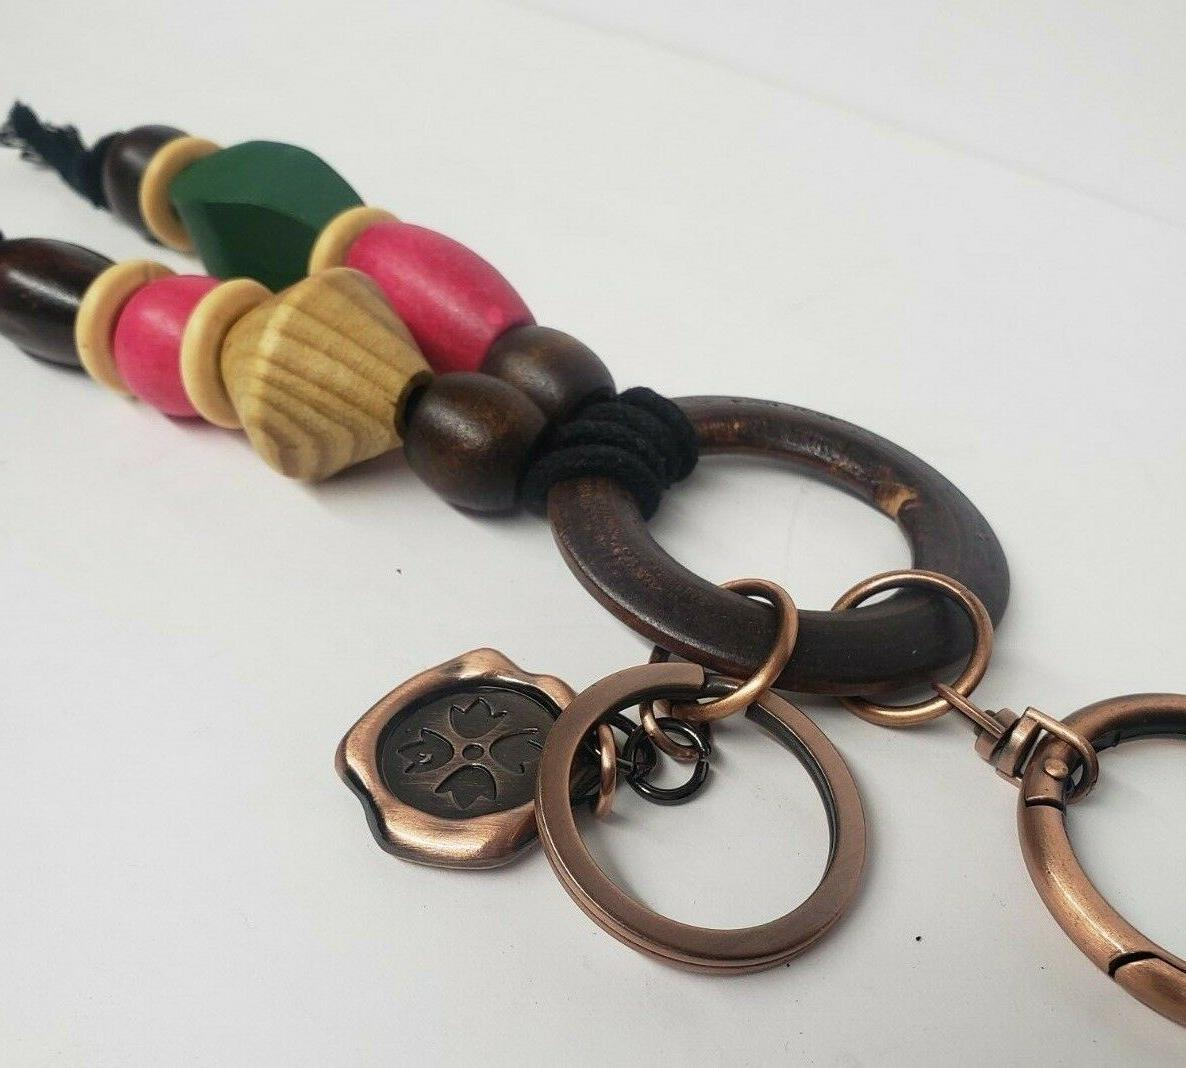 Patricia Multi-Color Wood Beaded KEY CHAIN NWT Z7